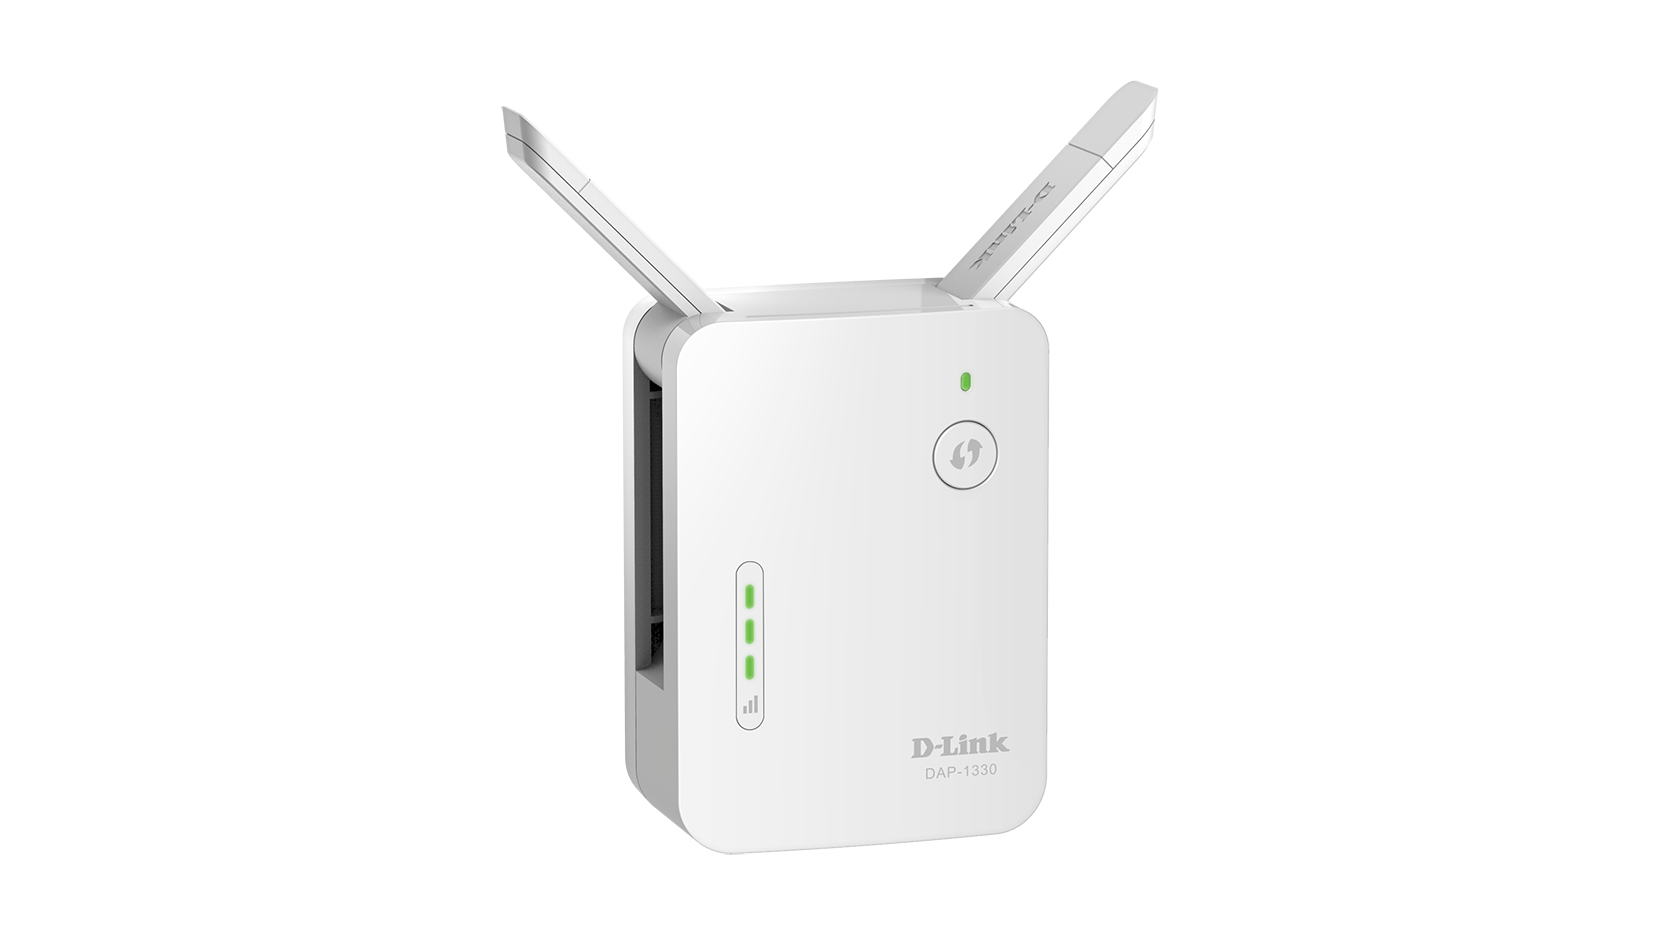 D-Link DAP-1320 revA1 Range Extender Drivers for Mac